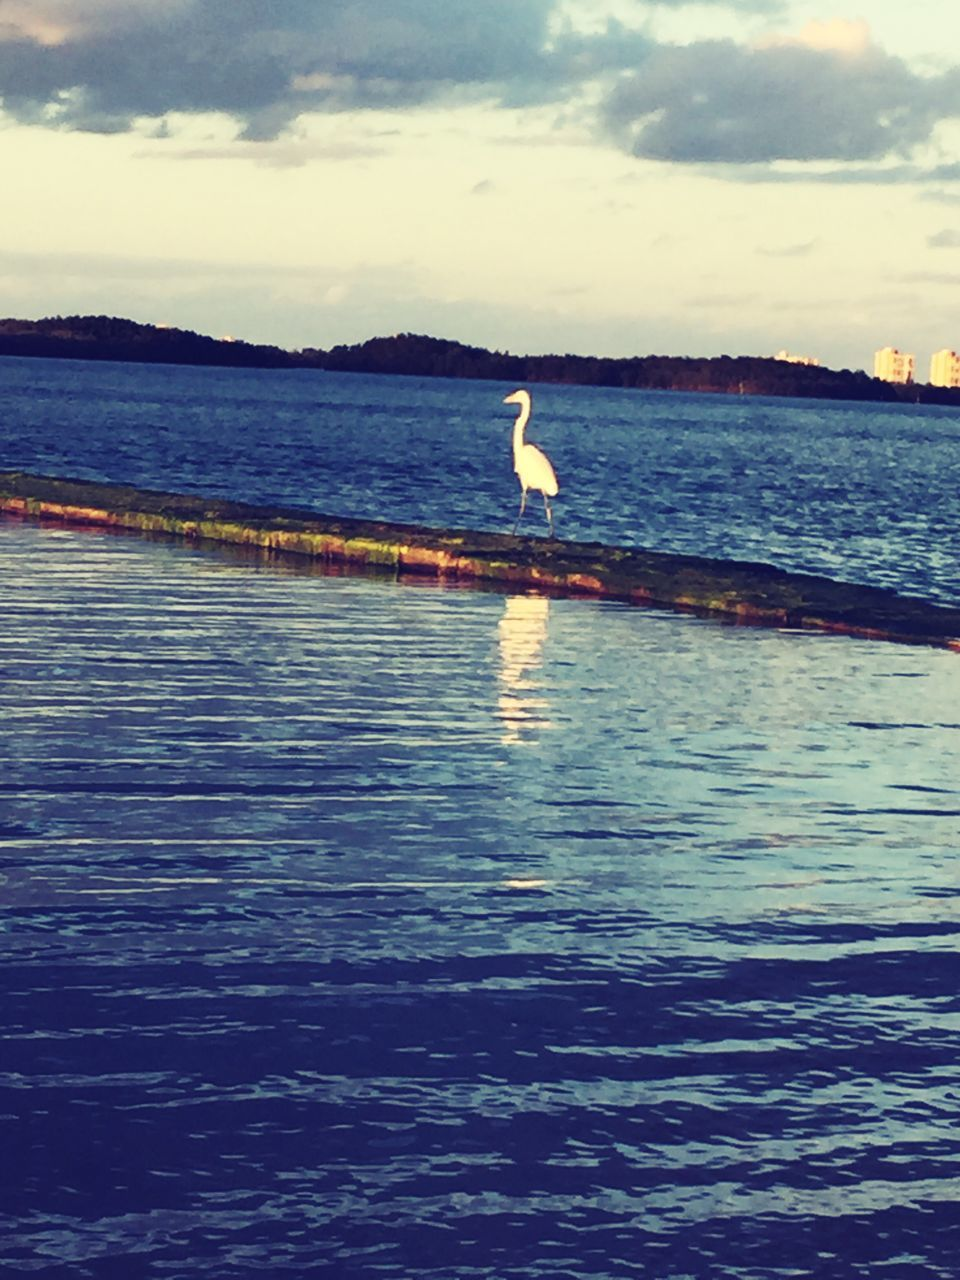 water, sea, nature, sky, sunset, beauty in nature, scenics, cloud - sky, bird, one animal, outdoors, silhouette, tranquility, animal themes, day, no people